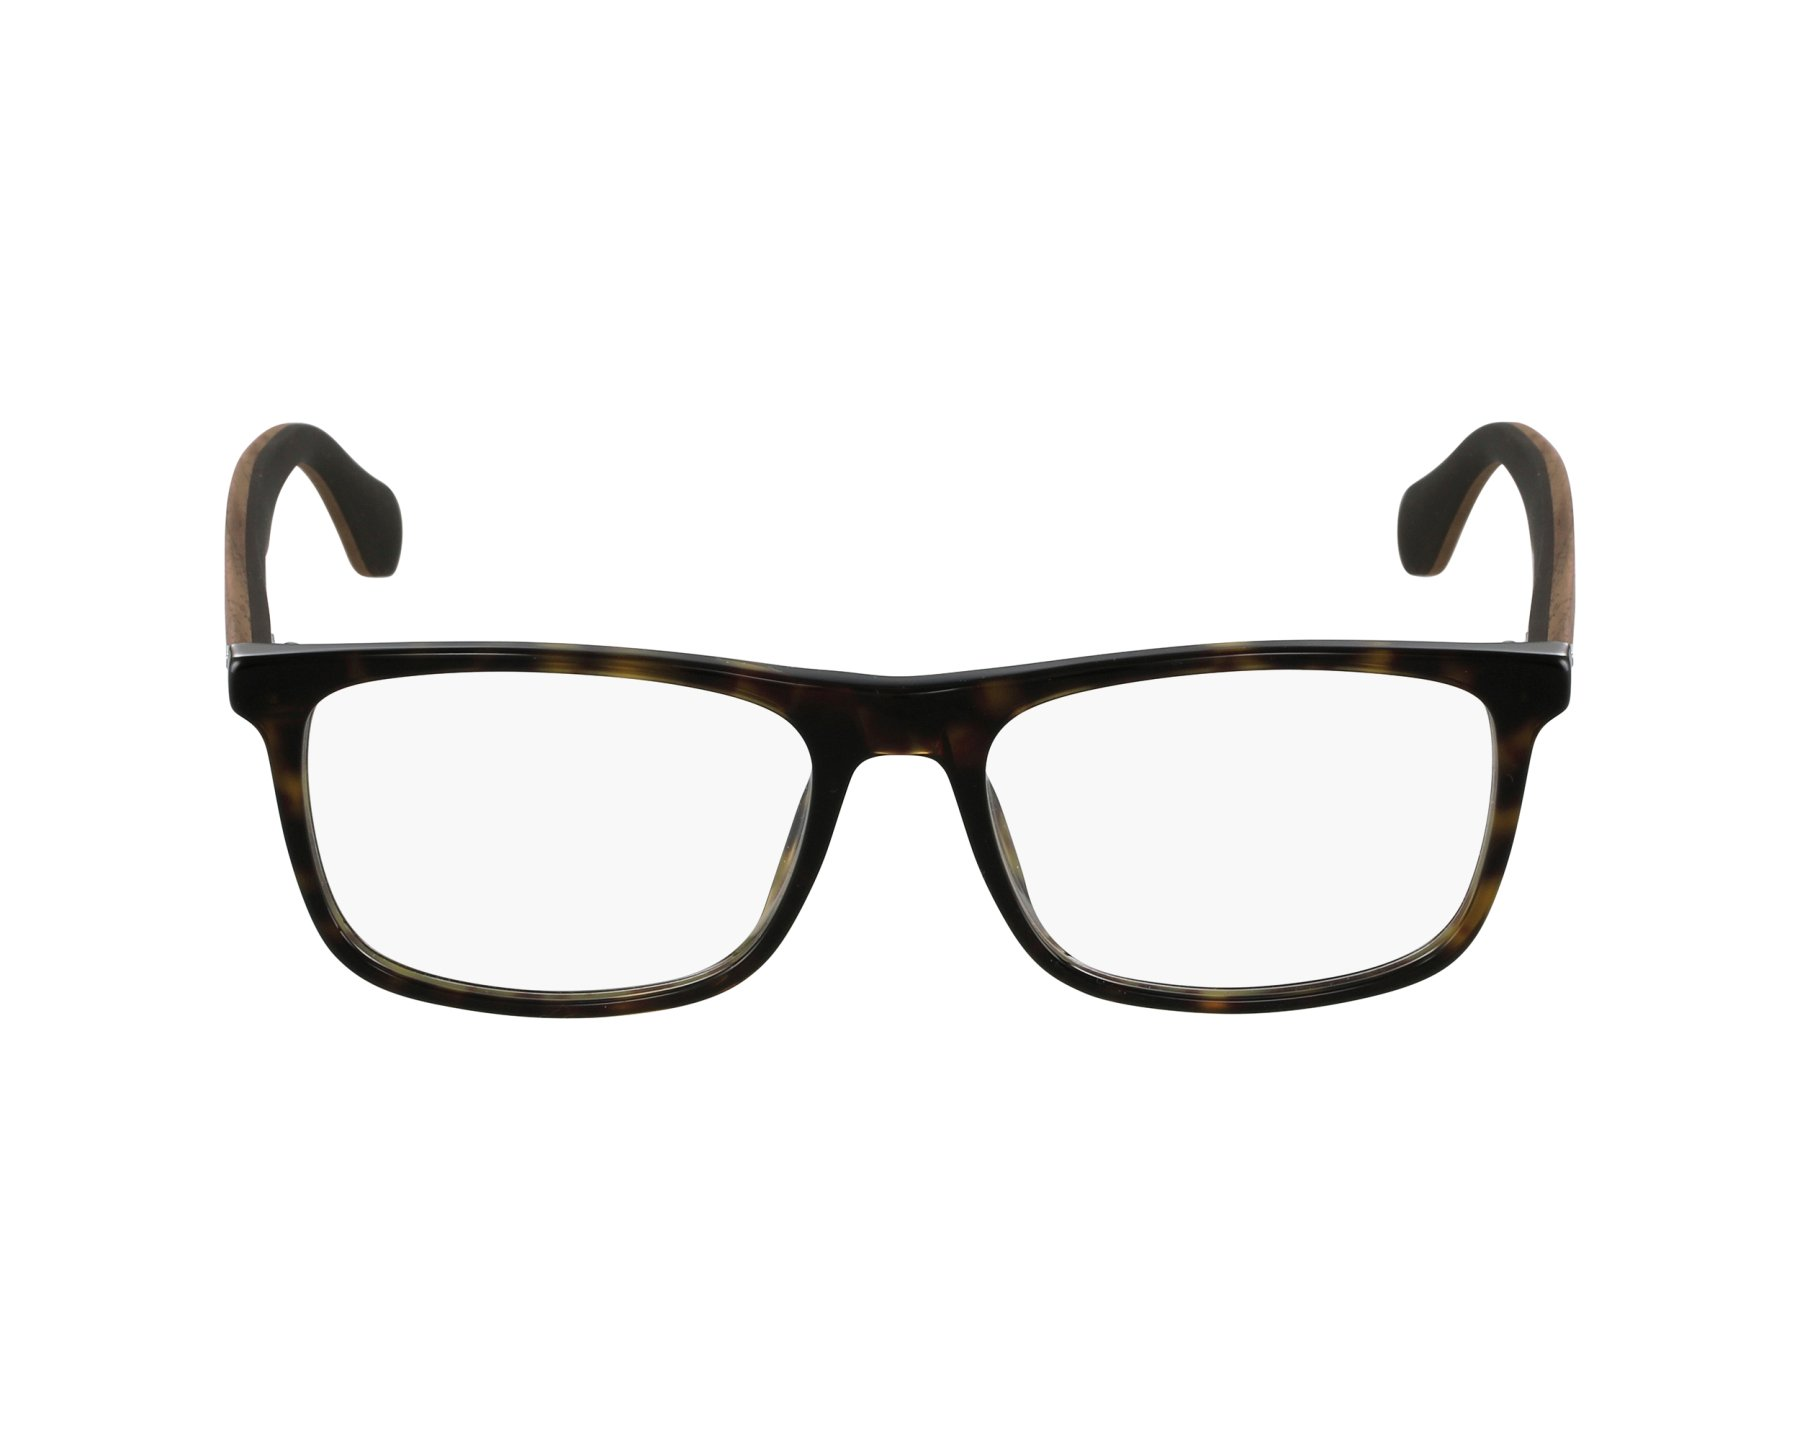 Hugo Boss Eyeglasses BOSS-0779 RAH Havana - Visionet UK